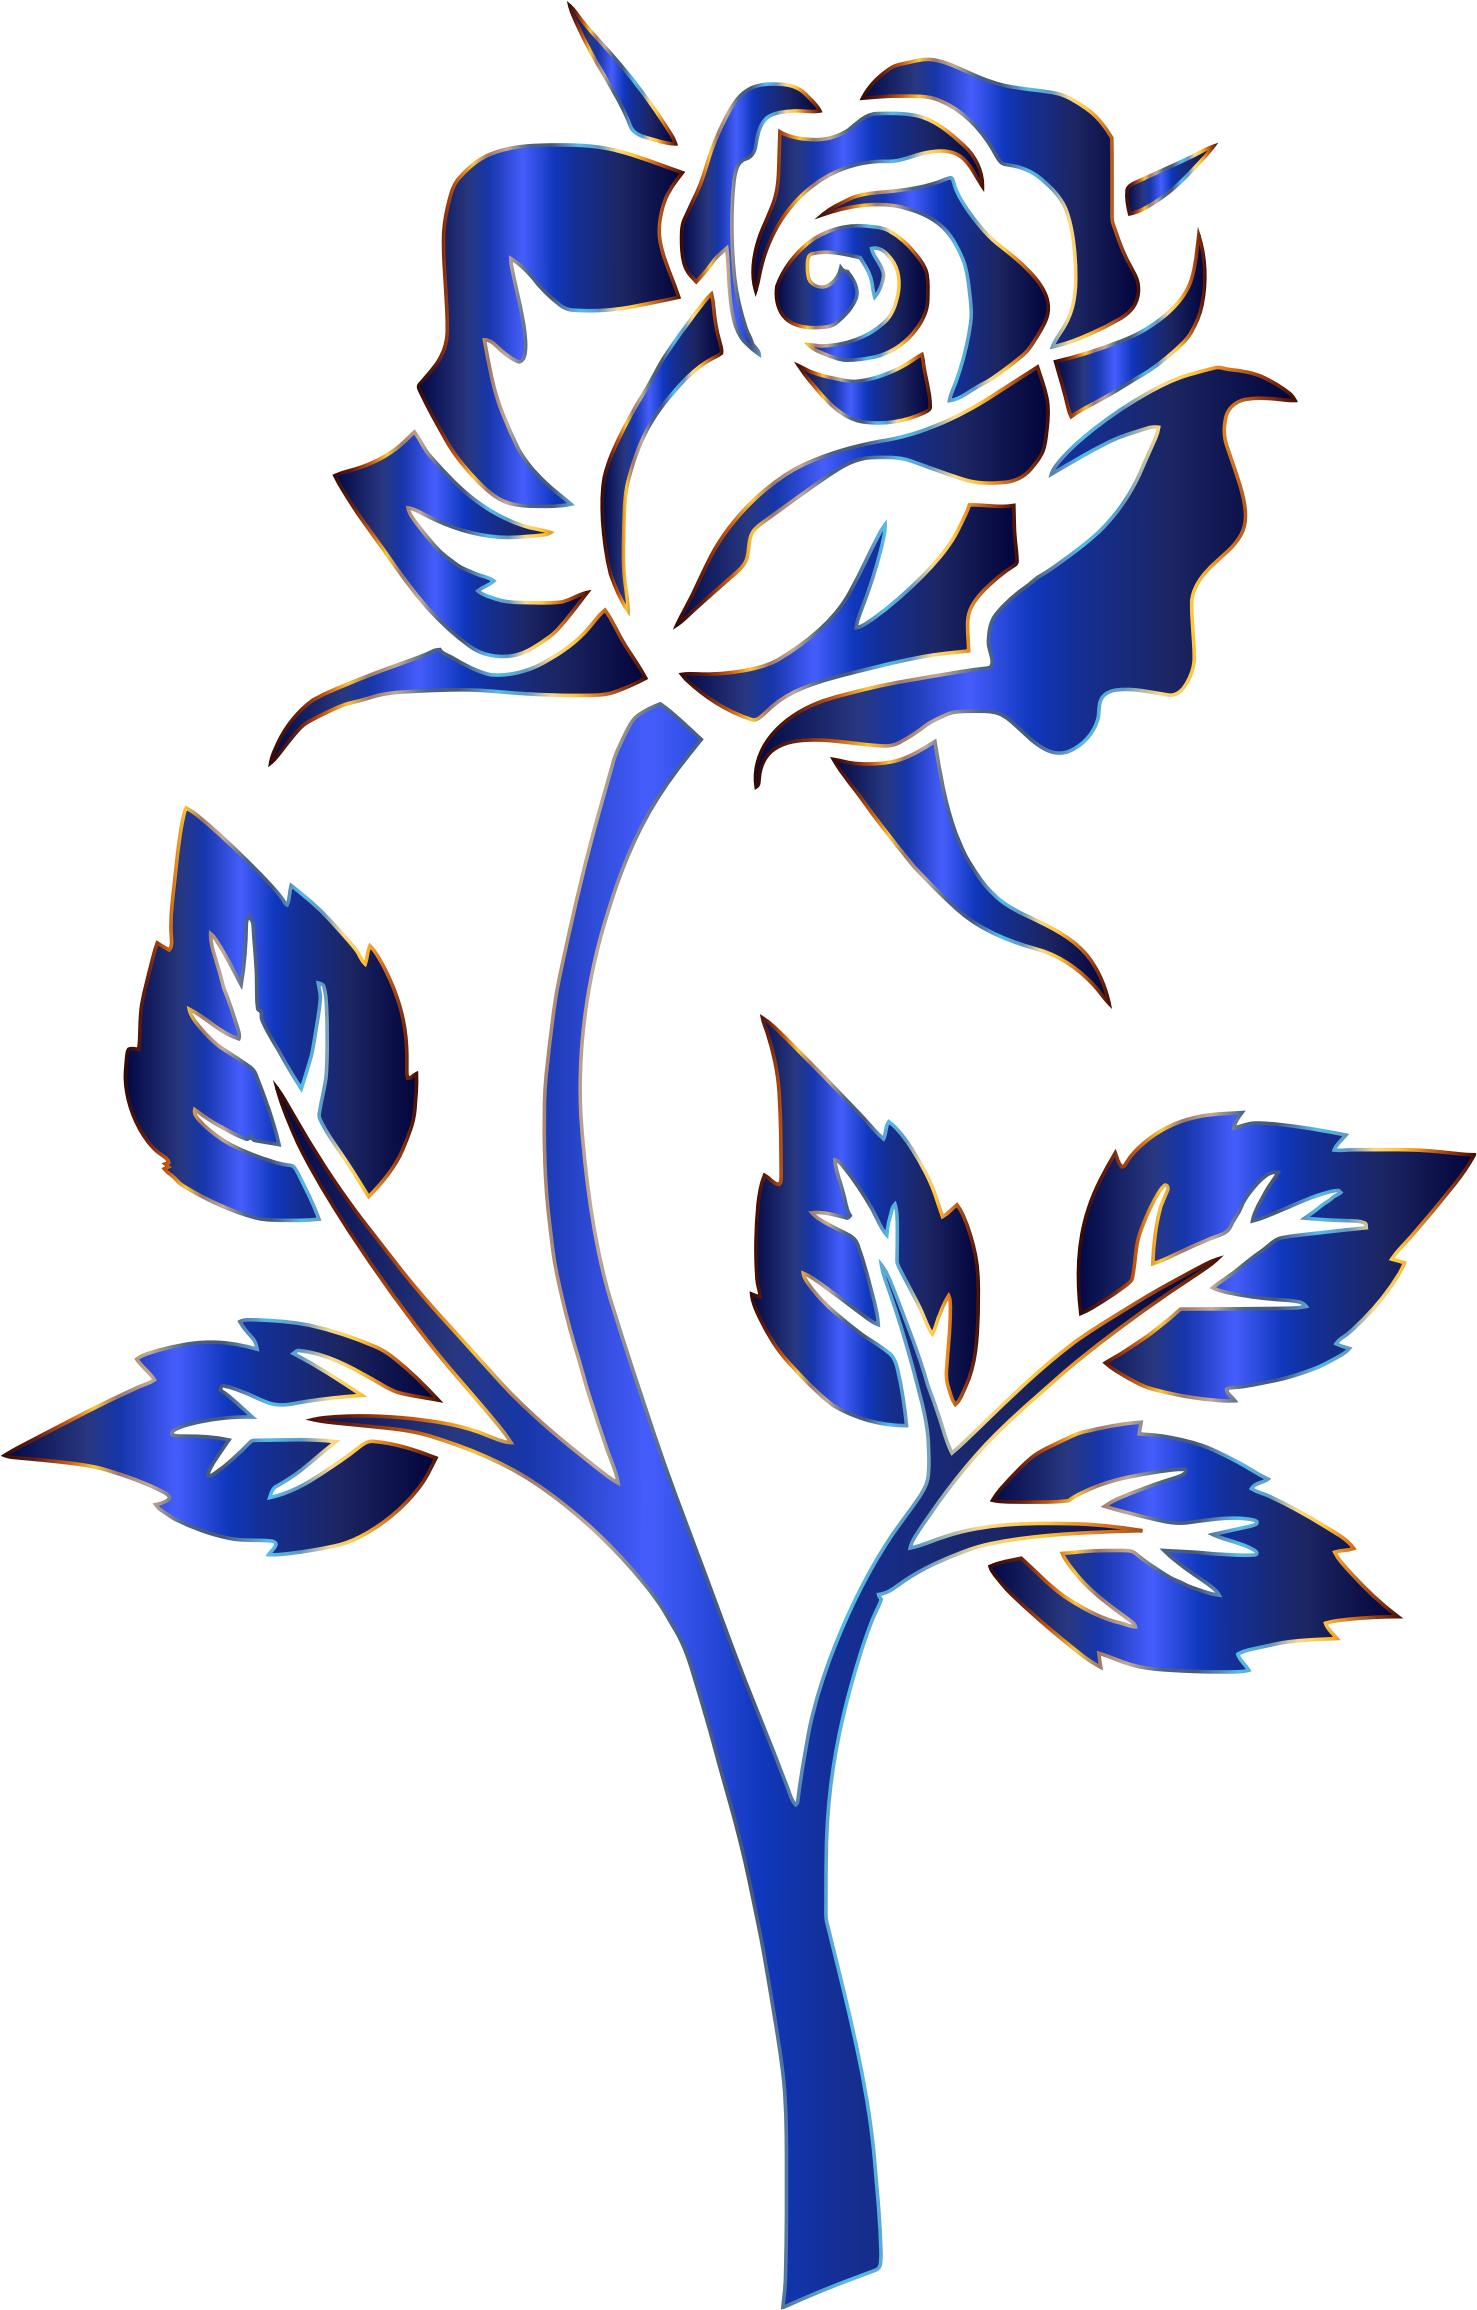 1477x2310 Azure Rose Silhouette No Background Icons Png